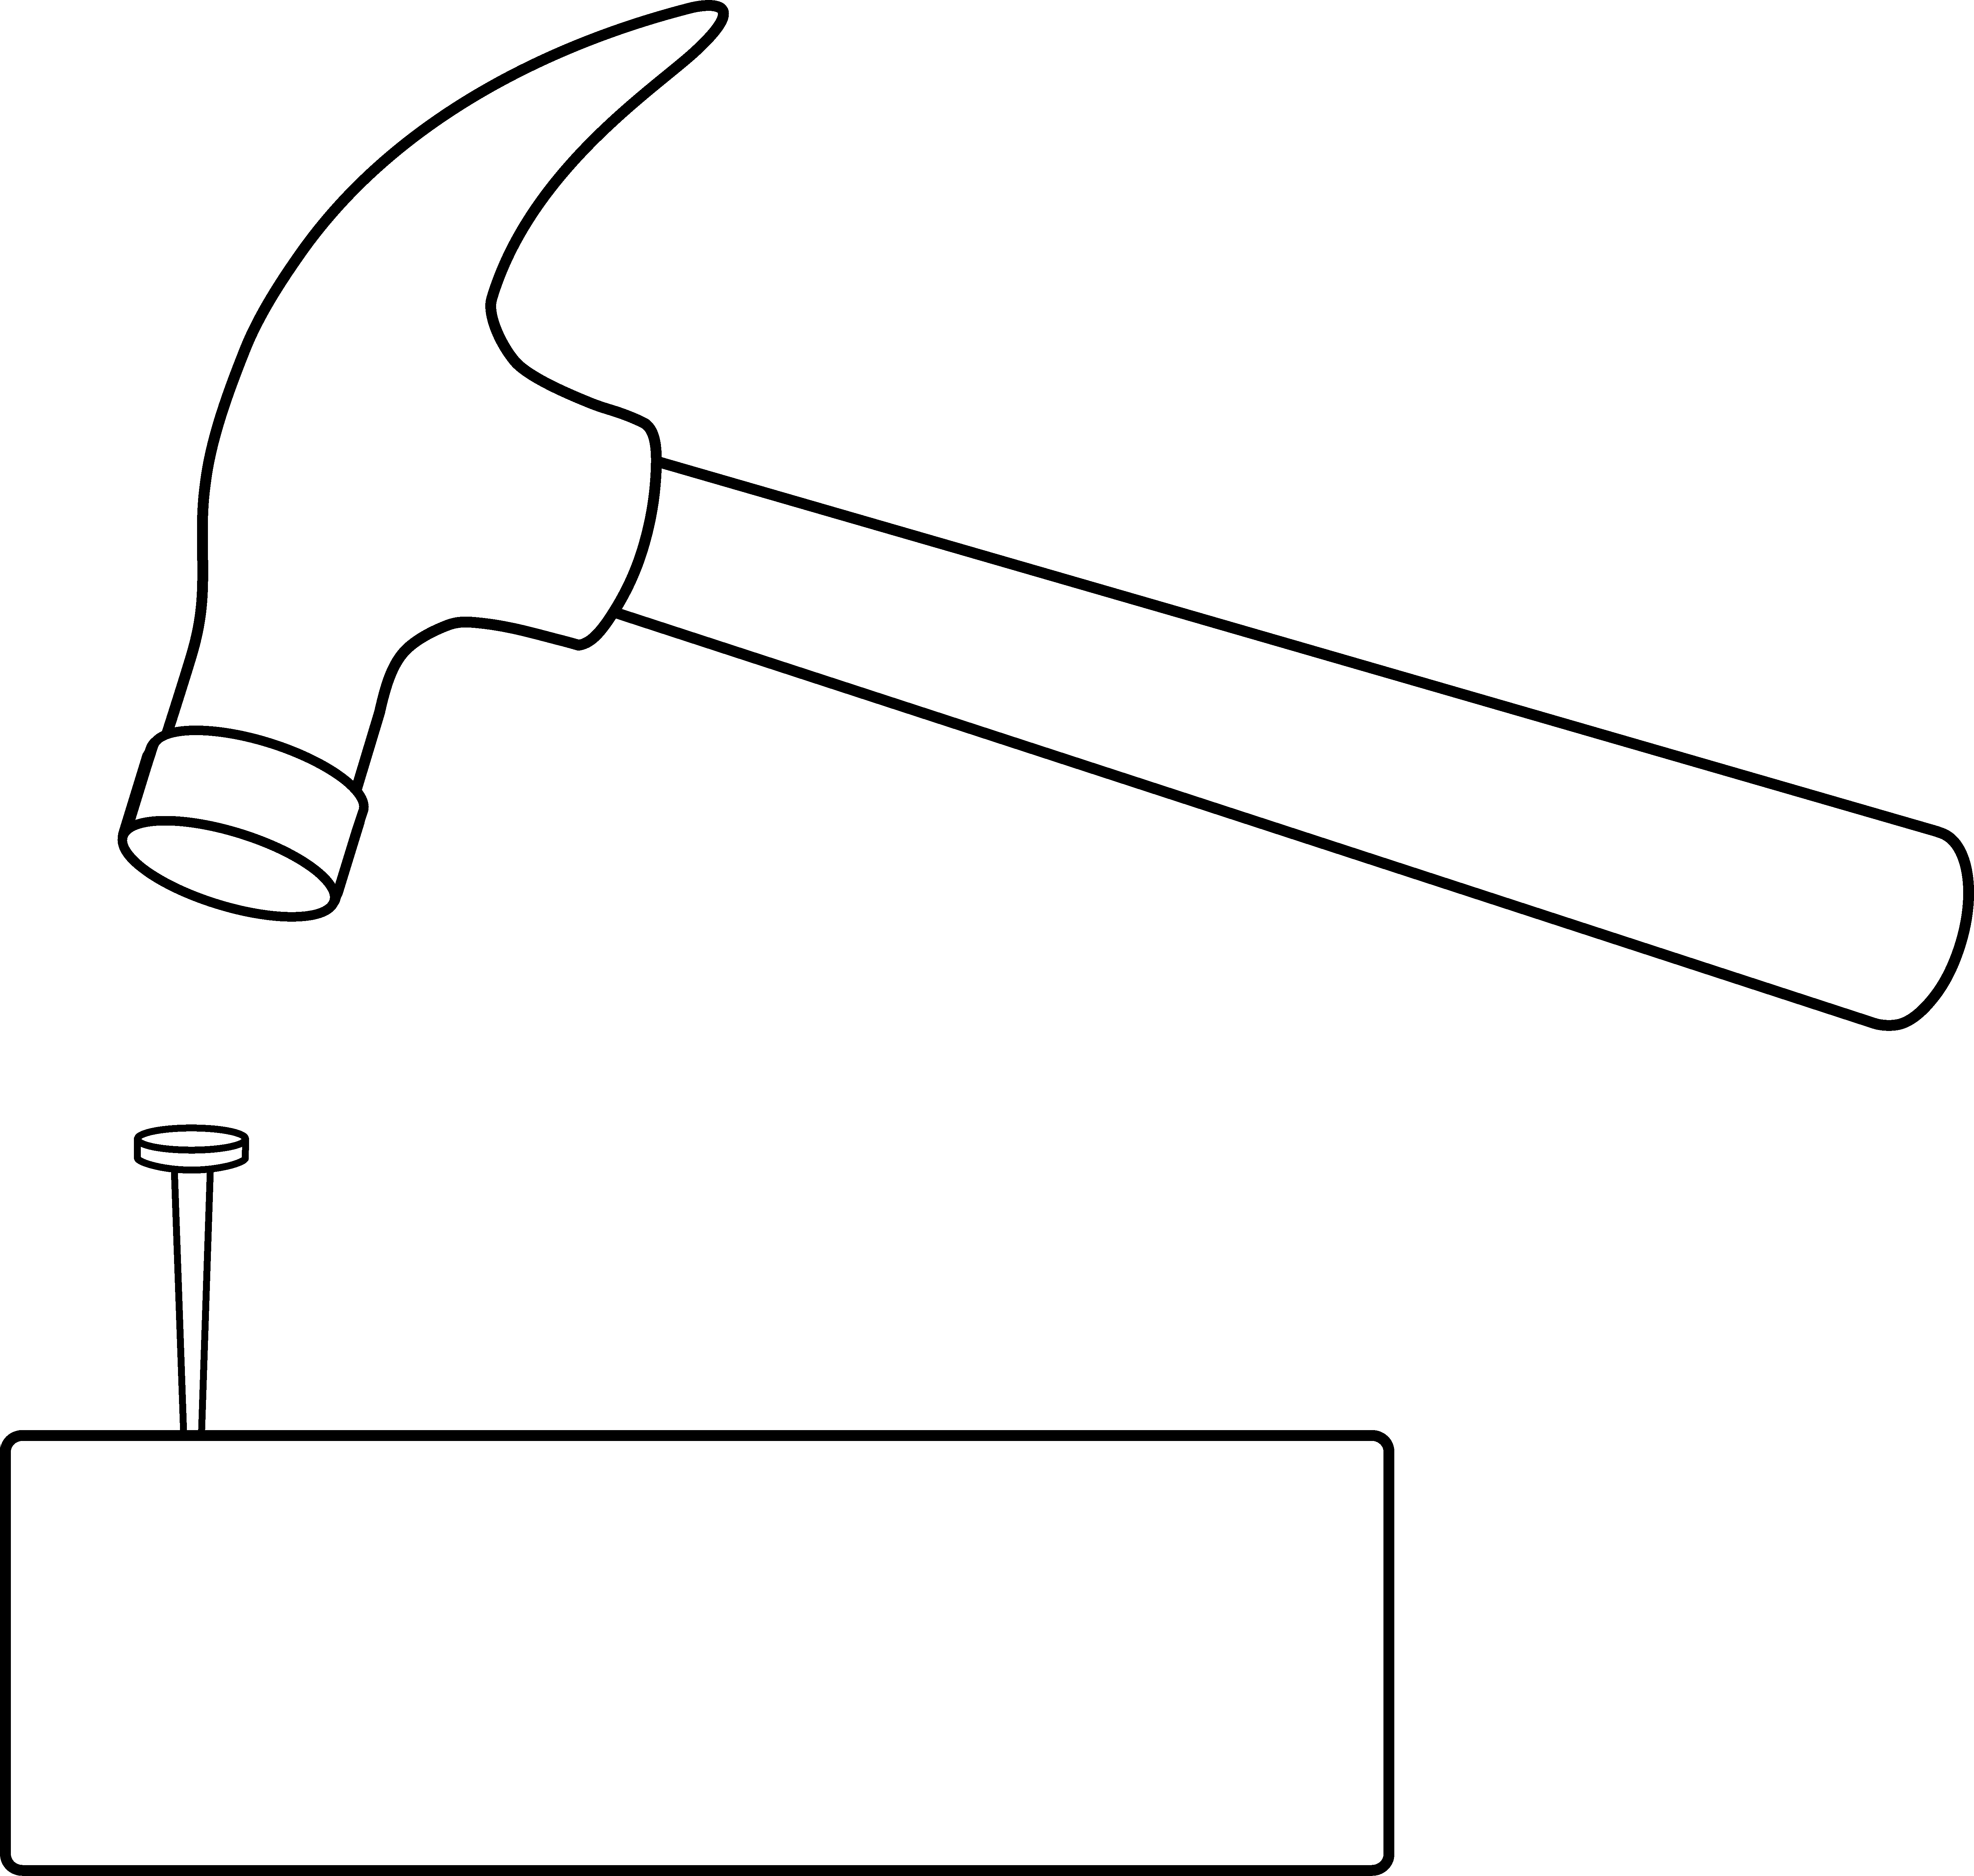 Nail clipart claw hammer. And outline free clip